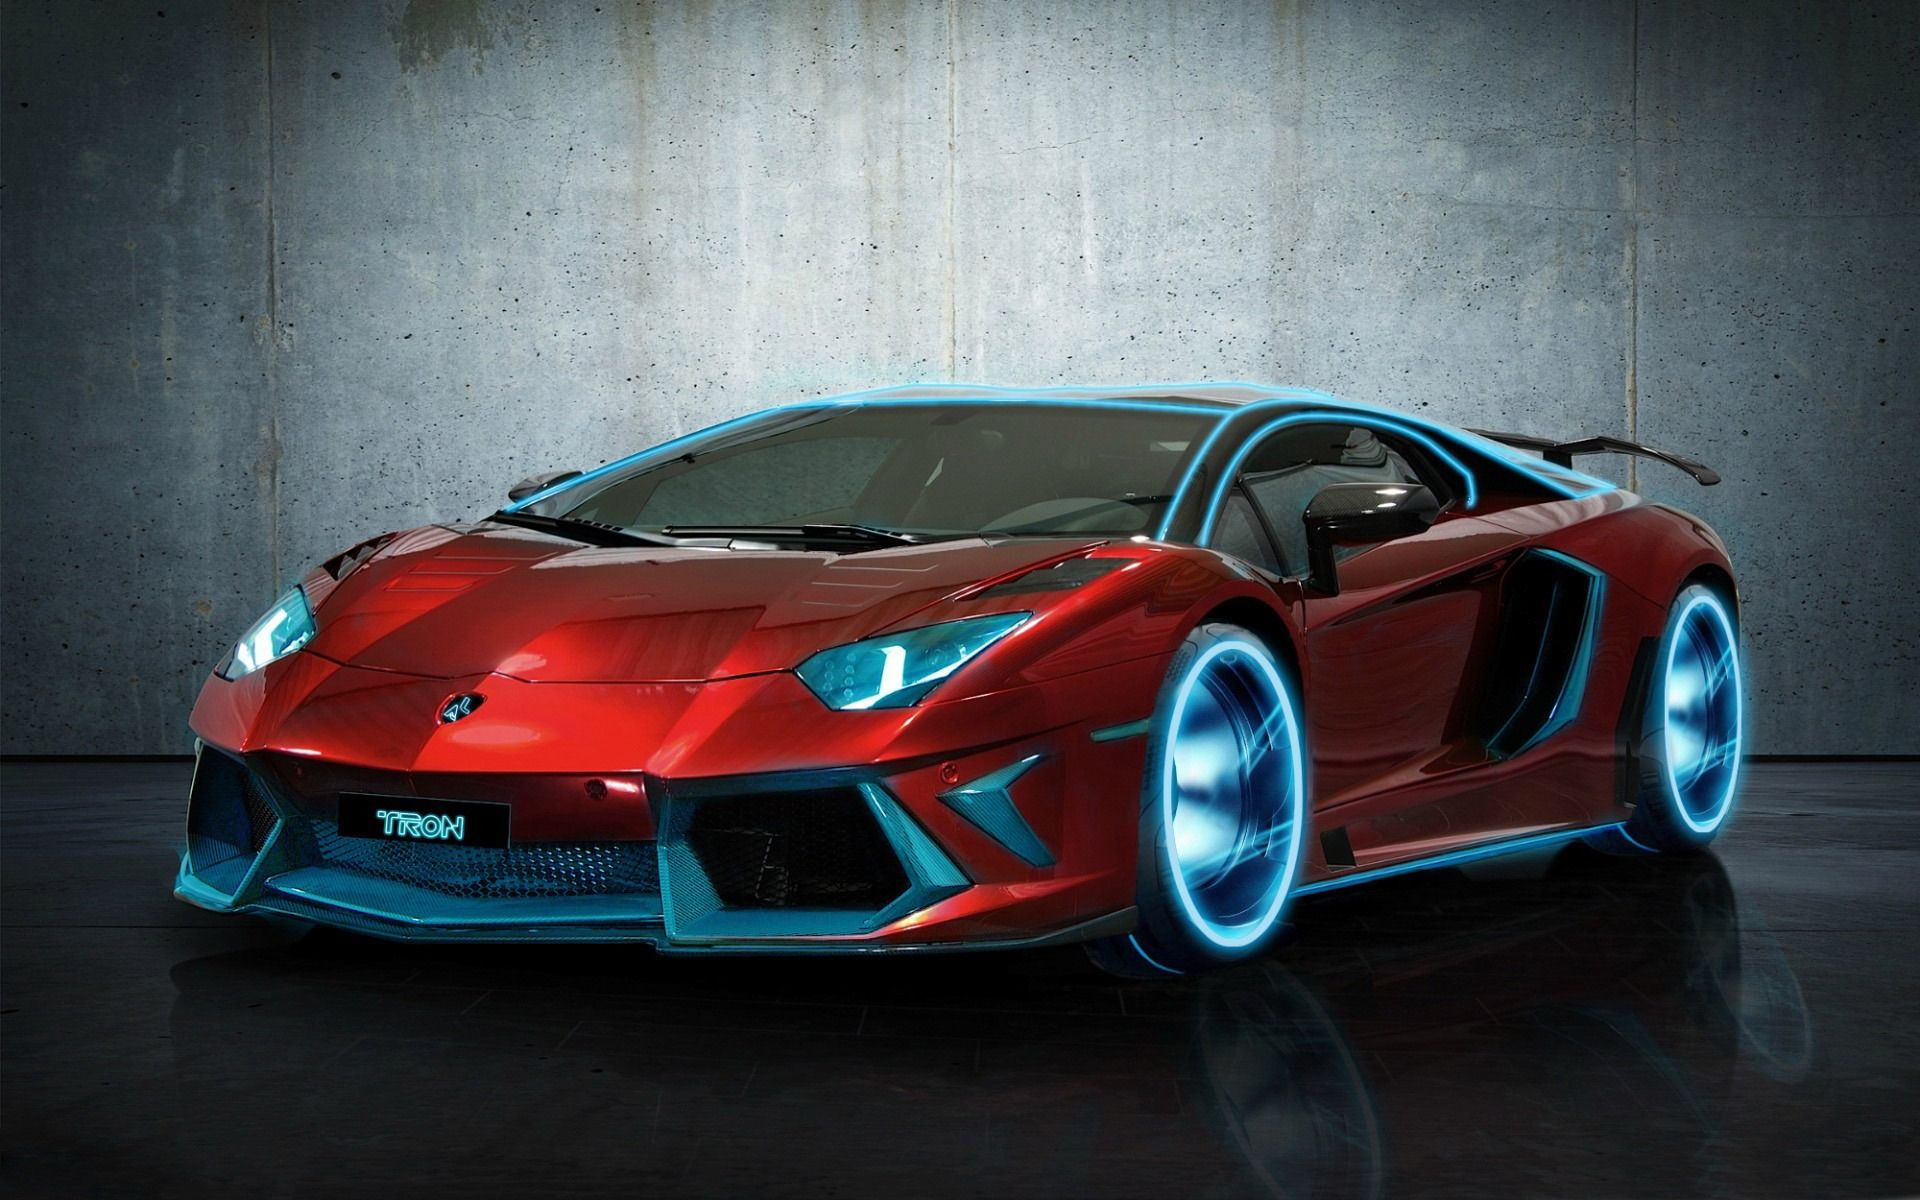 11 Awesome And Cool Cars Wallpapers